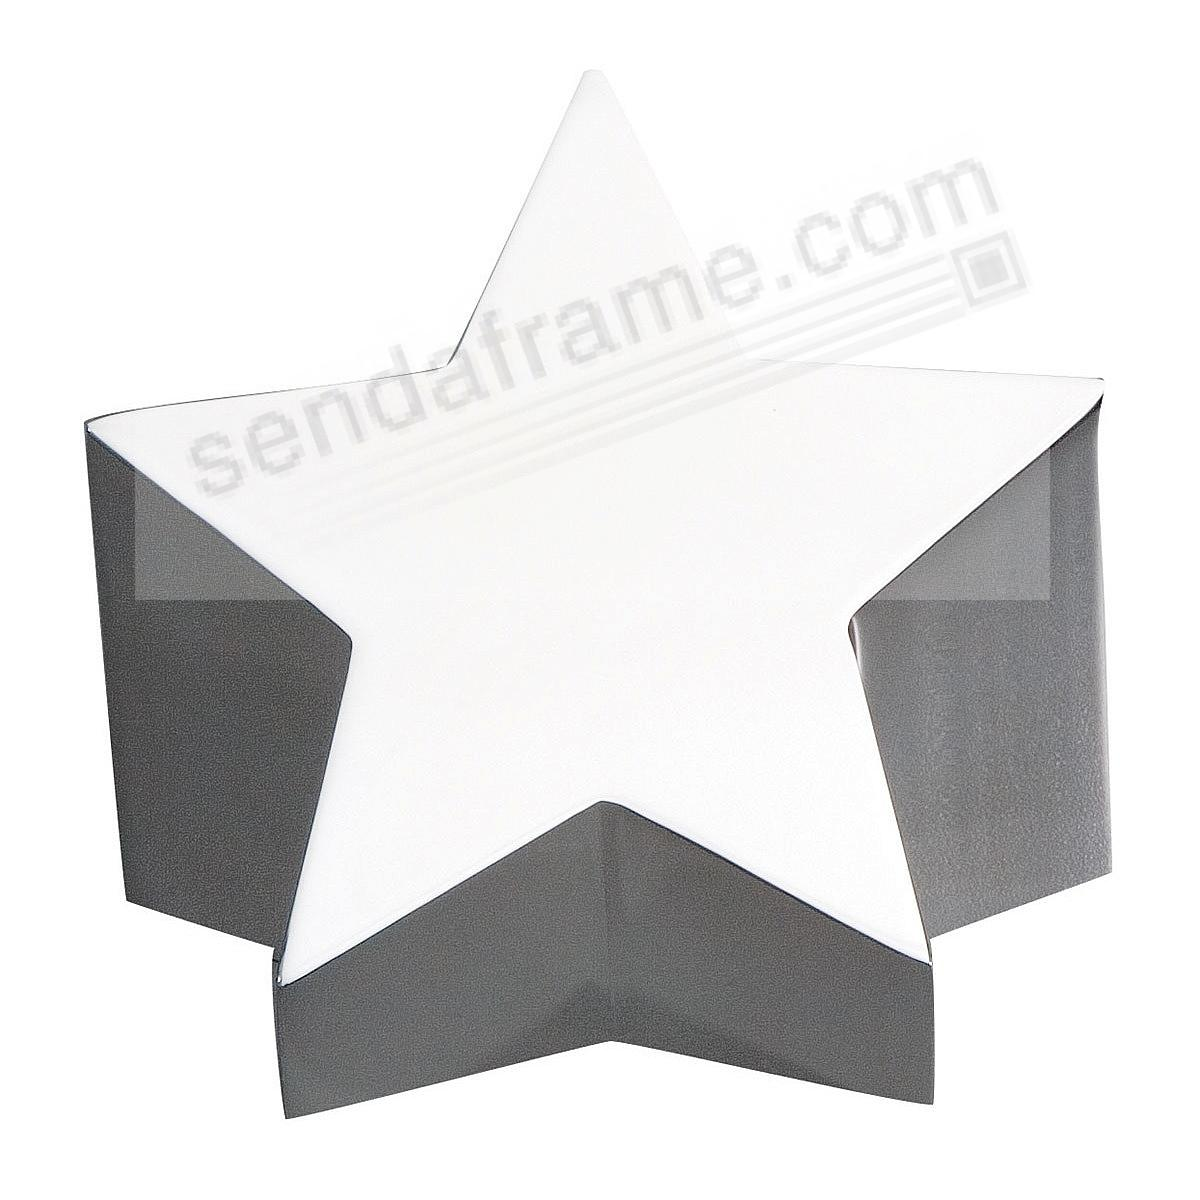 STAR COLUMN 4-in AWARD ICON by Nambe®